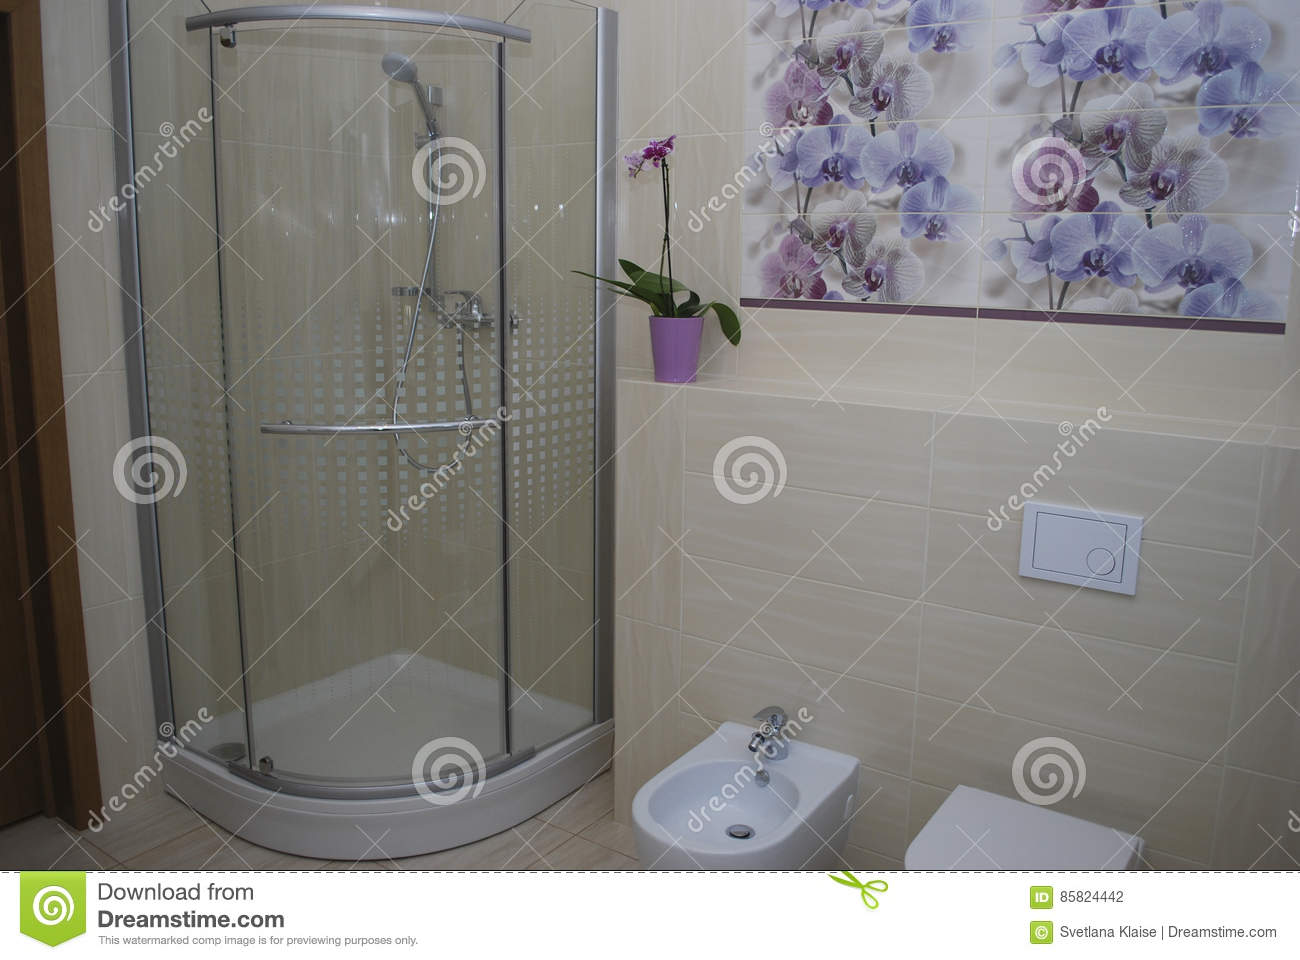 Interior Bathroom Shower With One Door, Built In Toilet And Bidet. On The  Walls Of Beige Tiles Direct And Structural, Decoration With Purple And Blue  ...